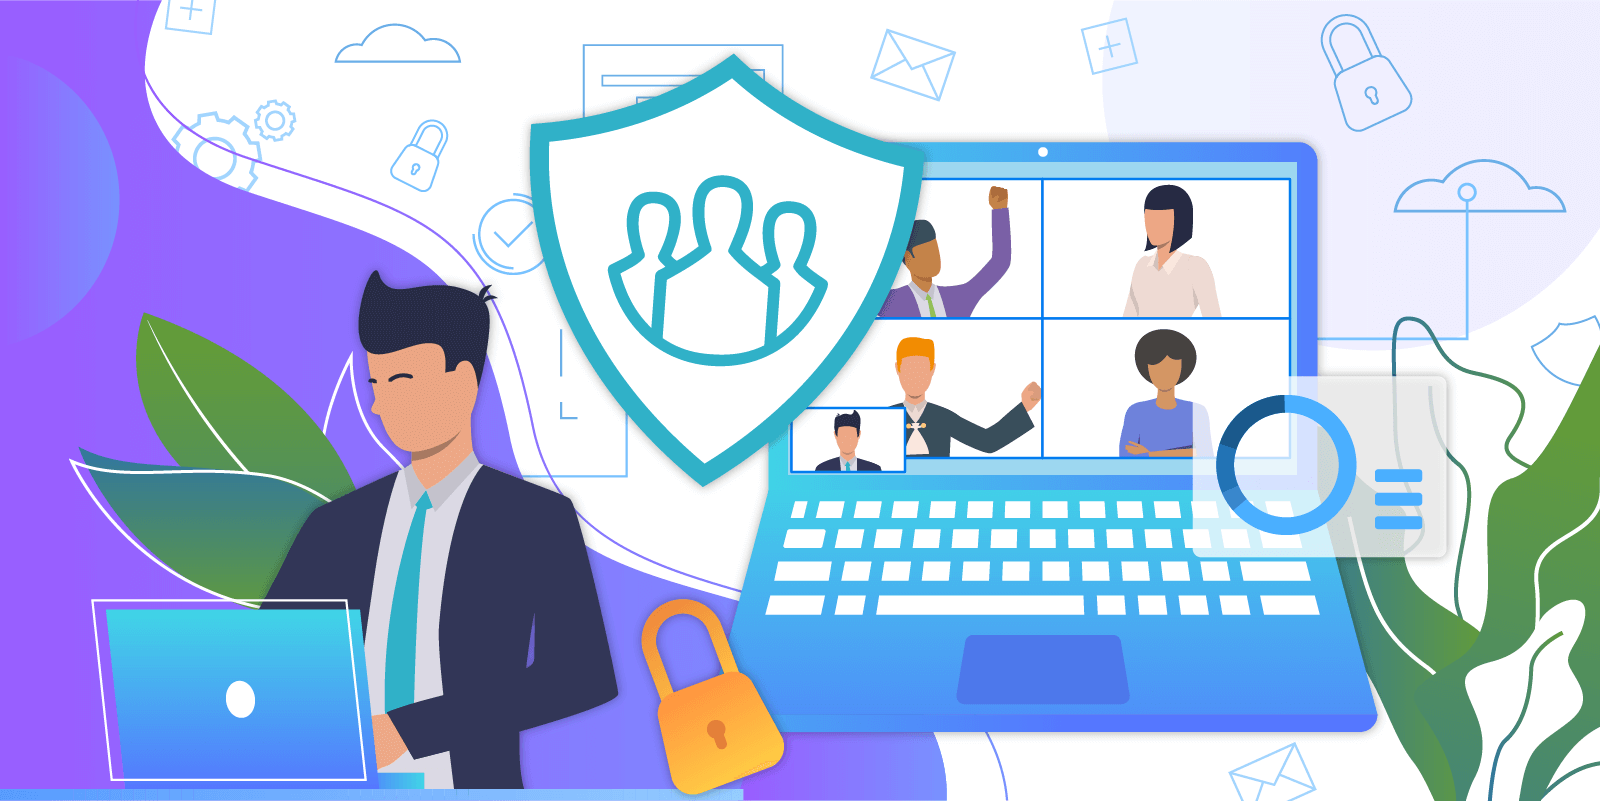 Video conferencing security: How TrueConf protects your privacy 8